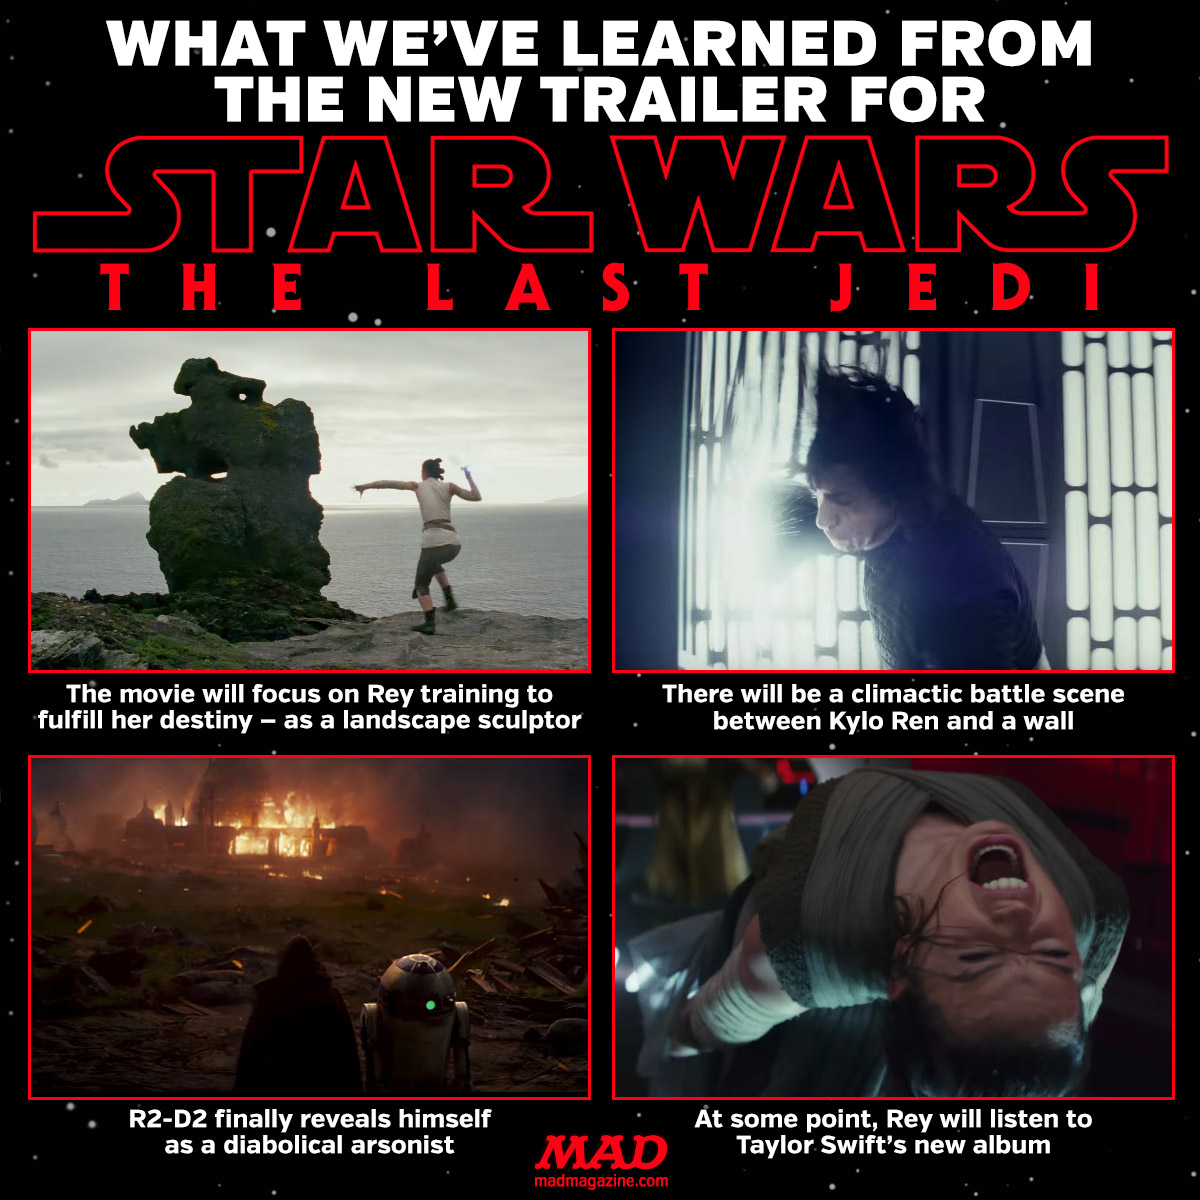 mad magazine star wars the last jedi What We've  Learned from the NEW Trailer for